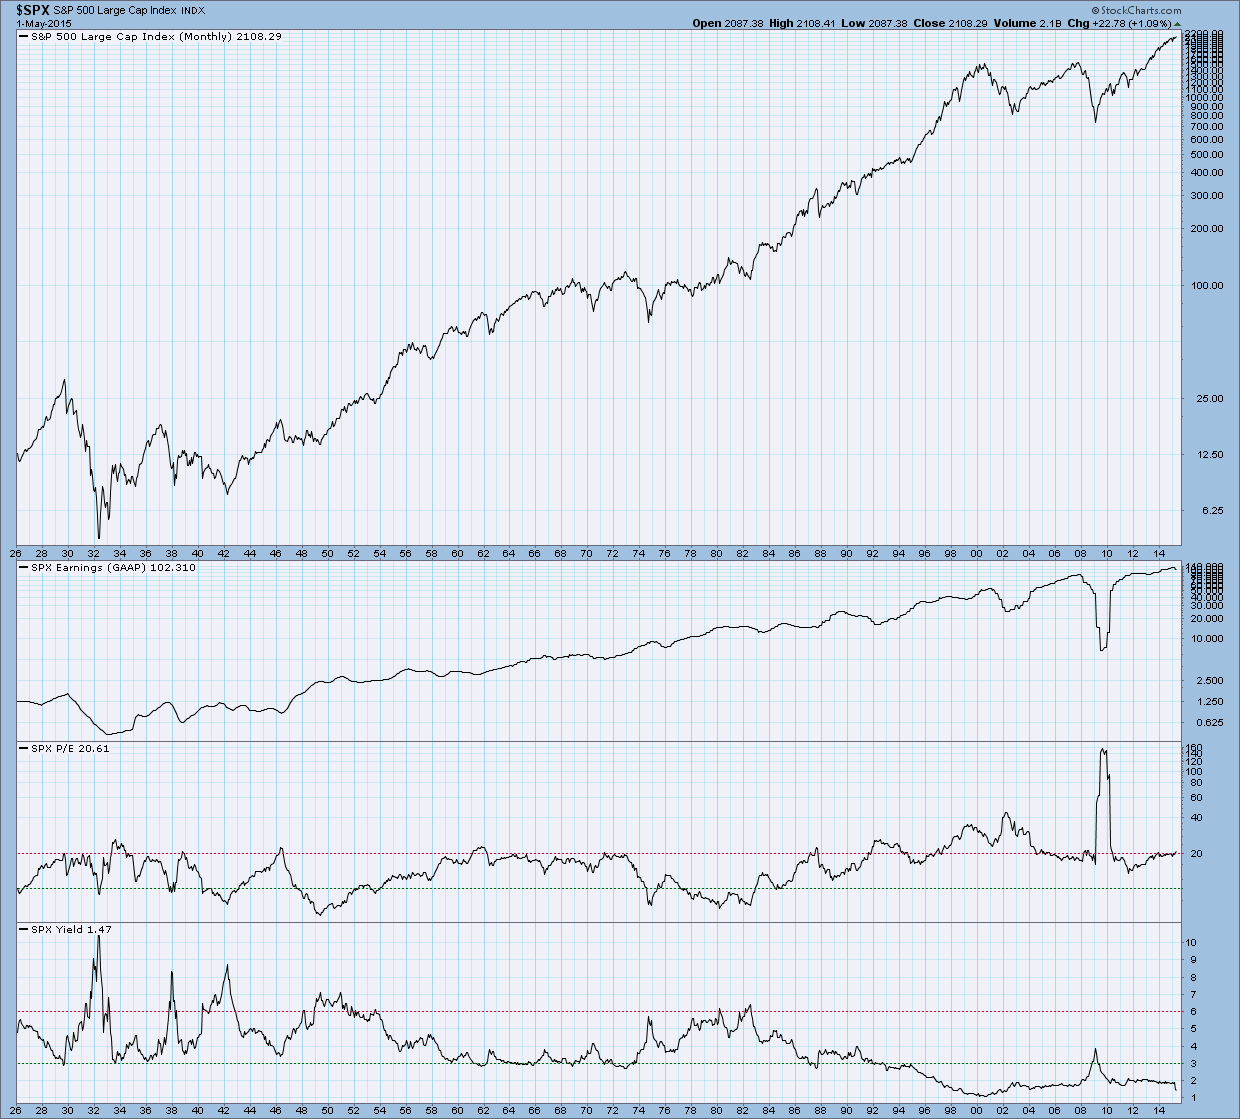 Index P E Charts Can Show You If The Market Is Too Expensive Right Now Charchers Stockcharts